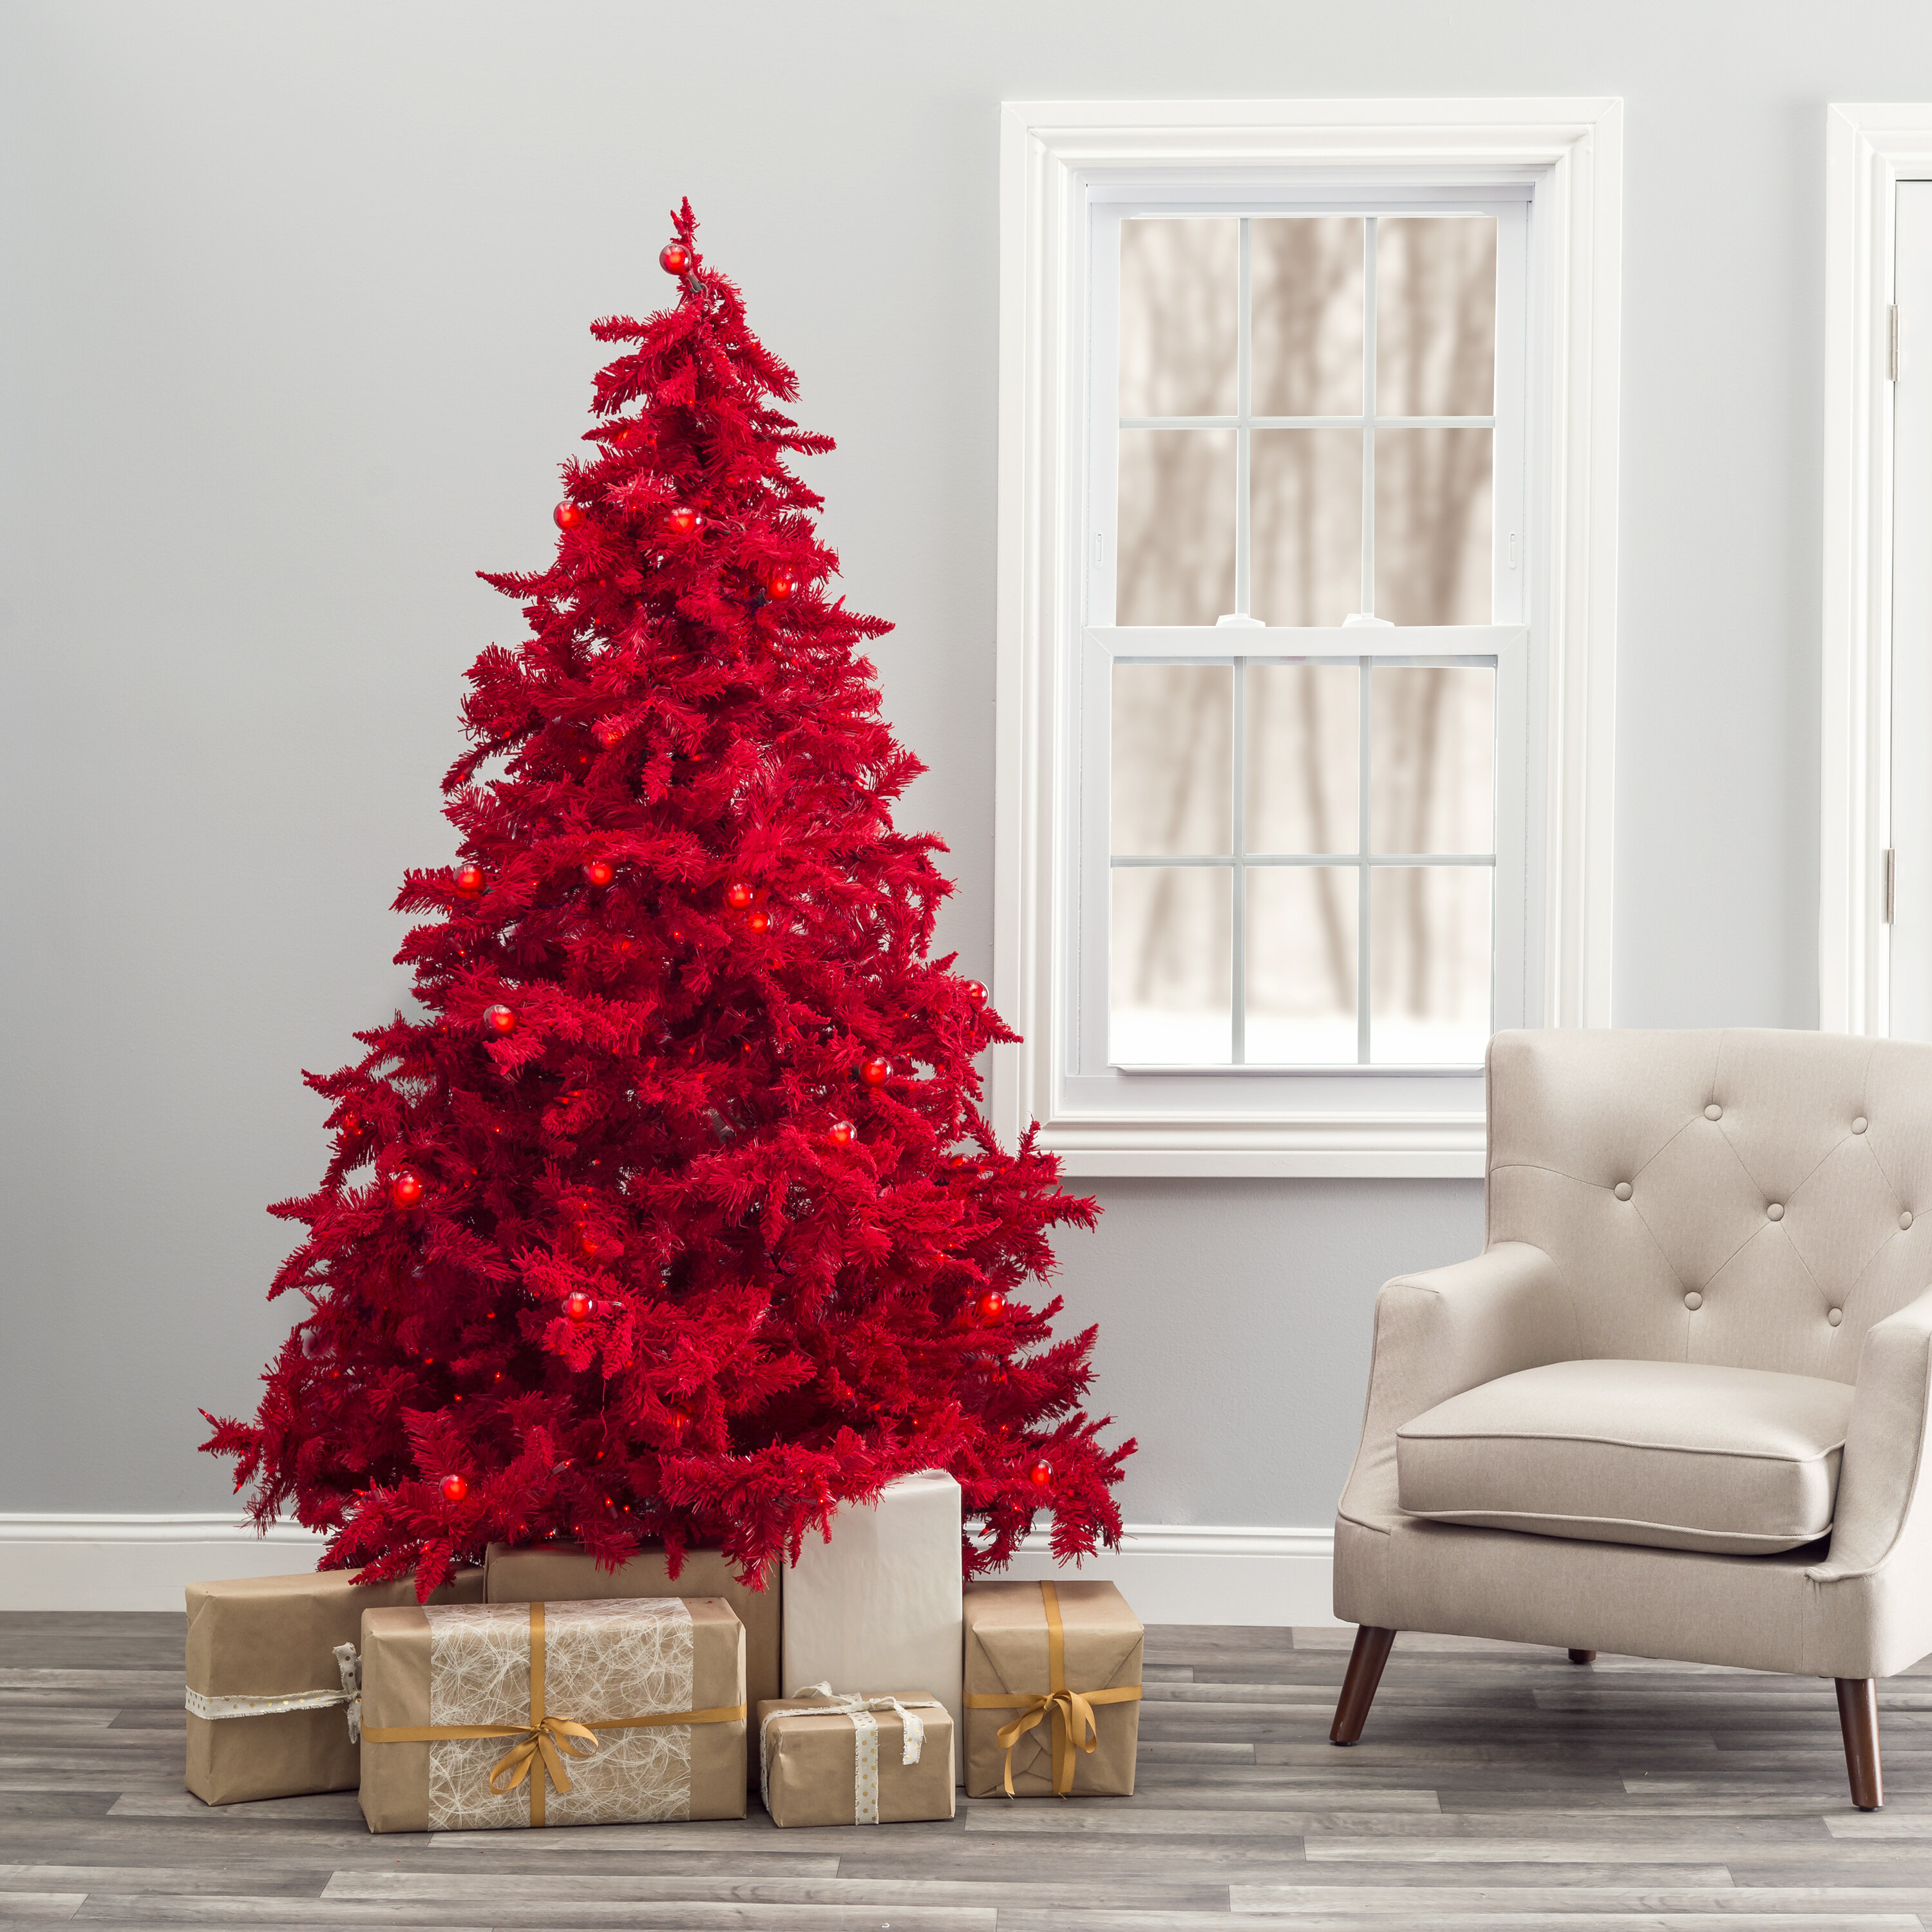 7 Foot The Holiday Aisle Flocked Christmas Trees You Ll Love In 2021 Wayfair